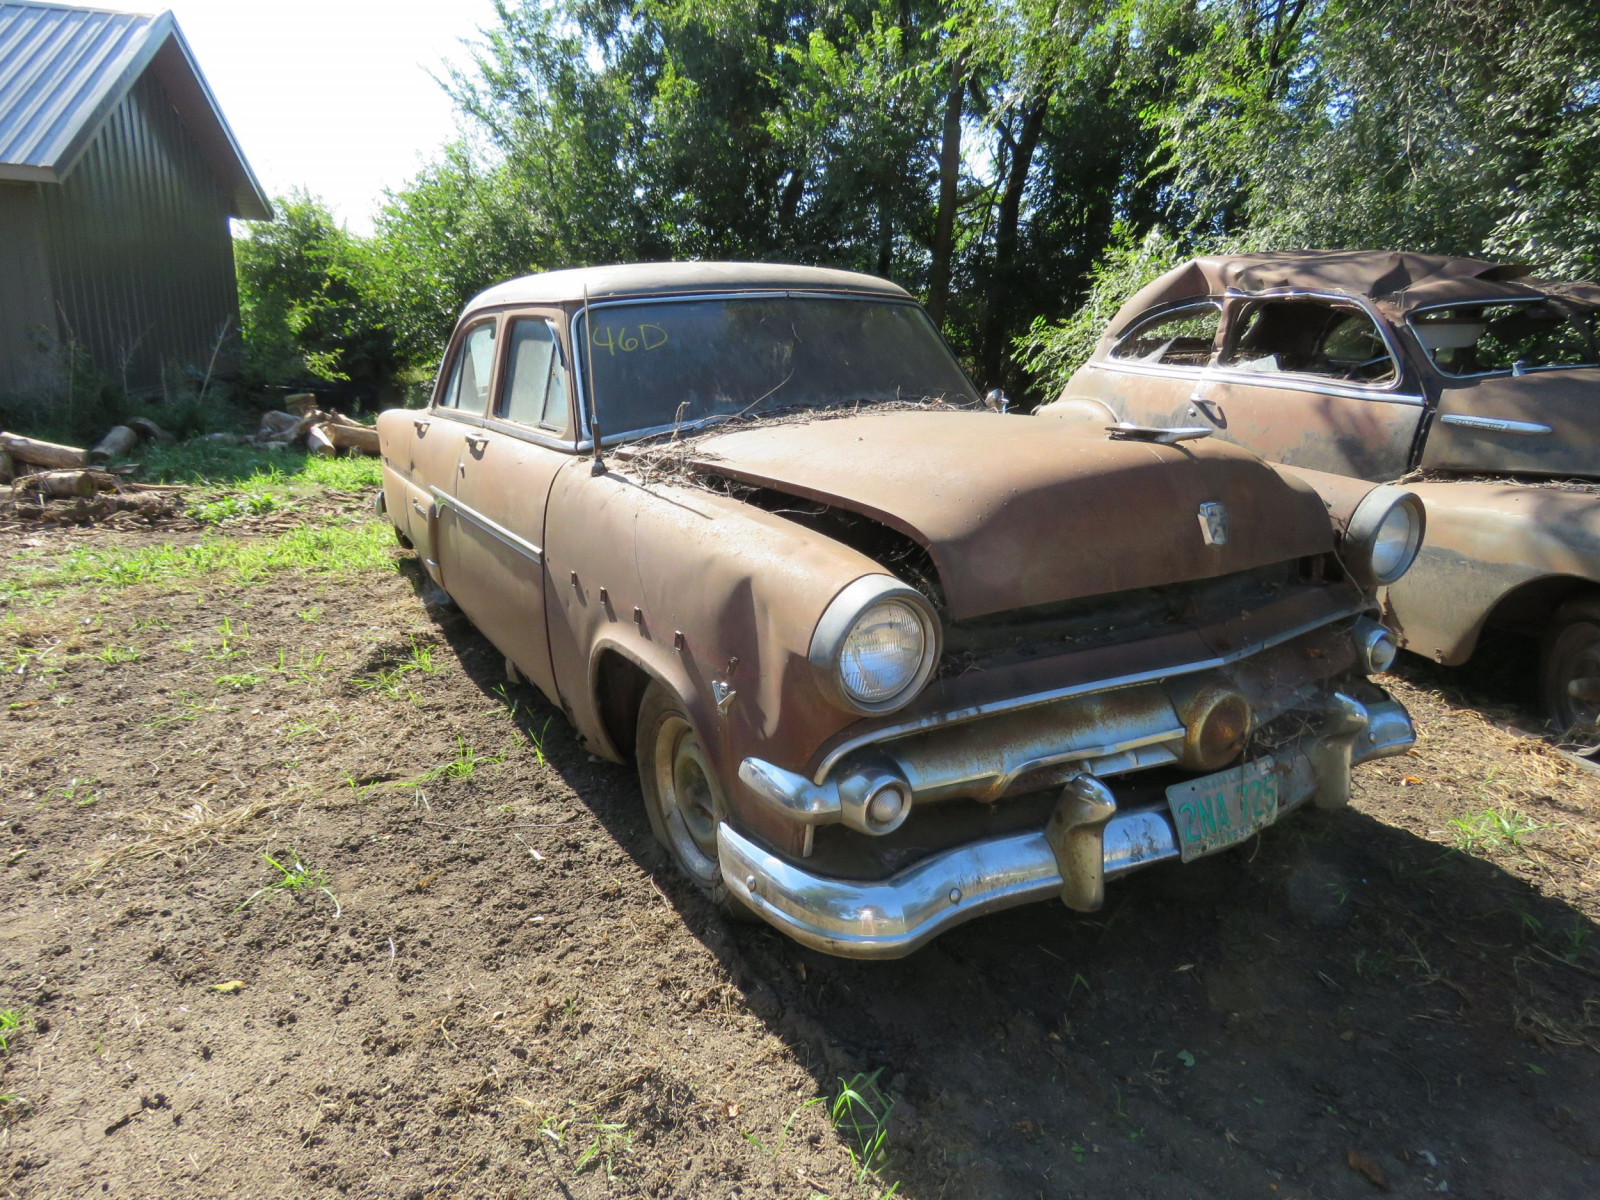 1954 Ford Customline 4dr Sedan for Project or Parts - Image 1